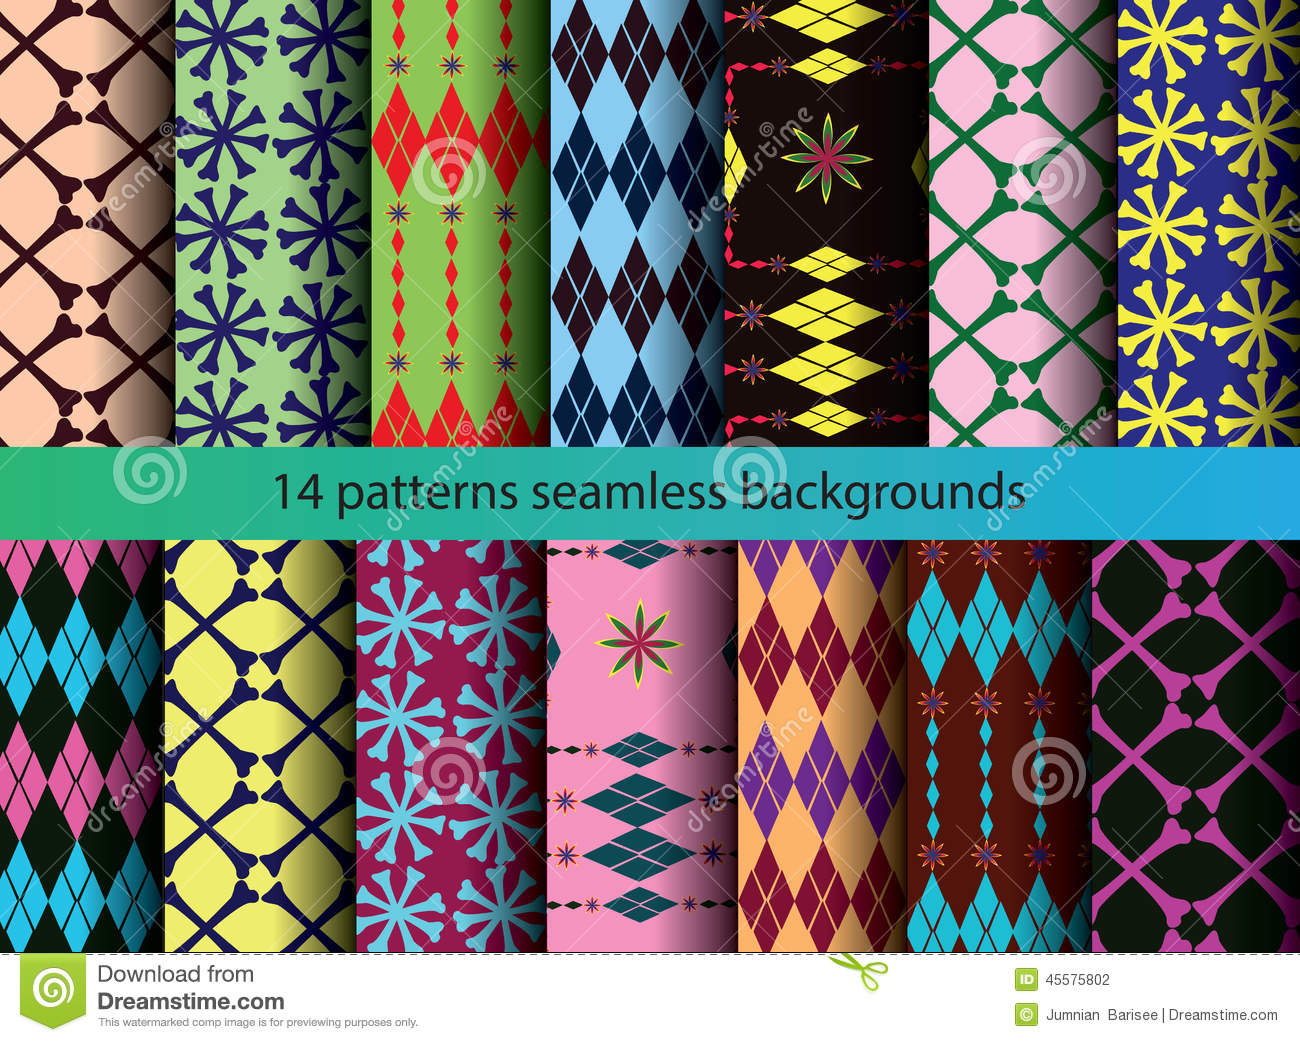 Four tine patterns backgrounds